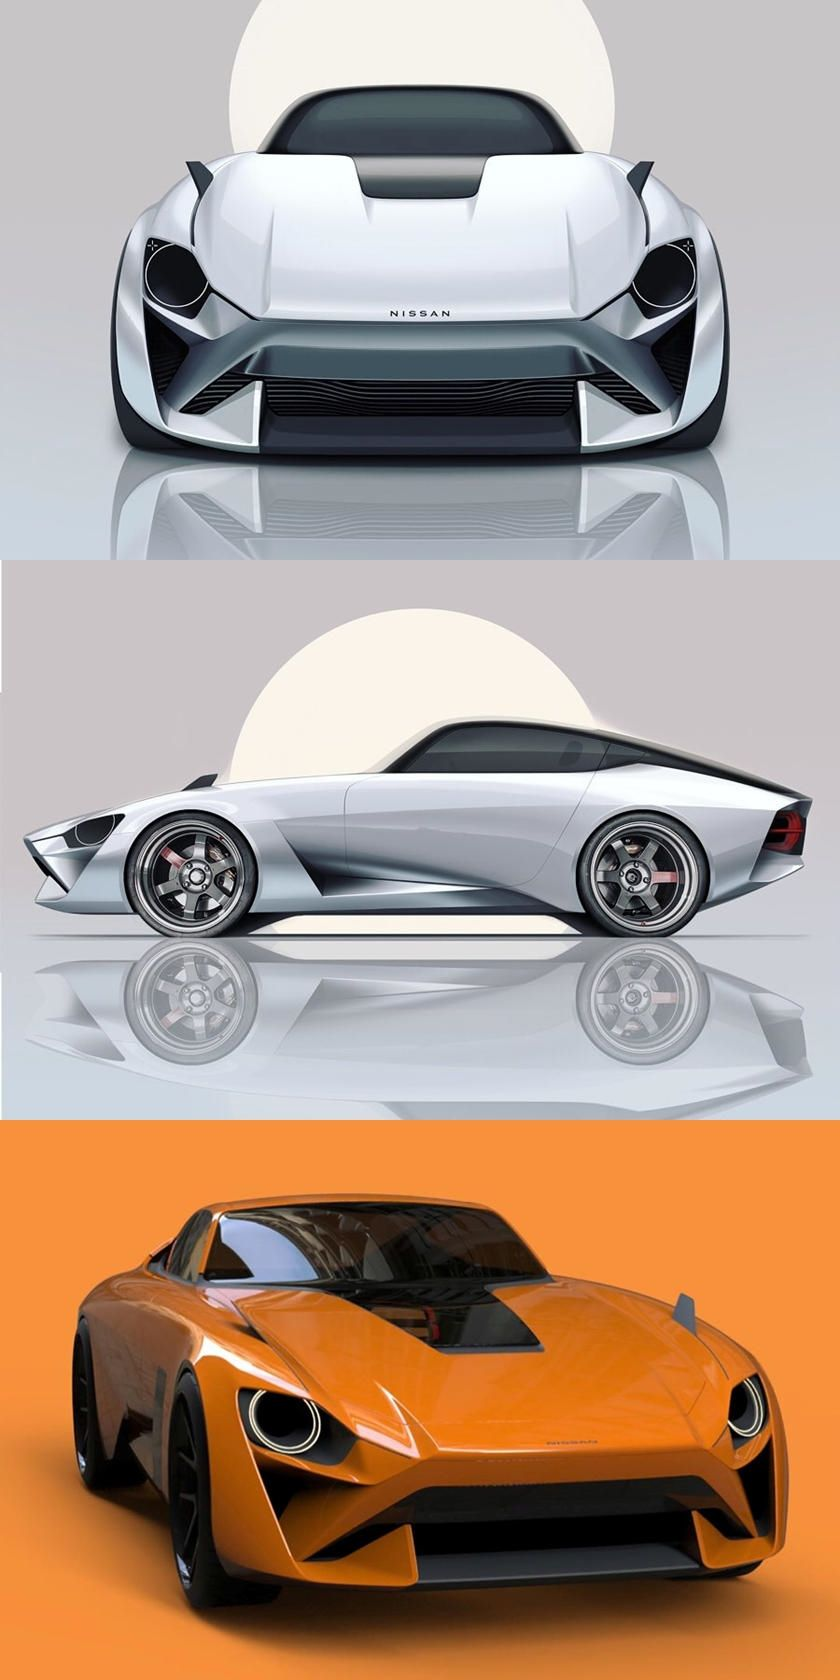 New Nissan 400z Won T Have Hybrid Option But The One After That Just Might In 2020 New Nissan Nissan Nissan Z Cars